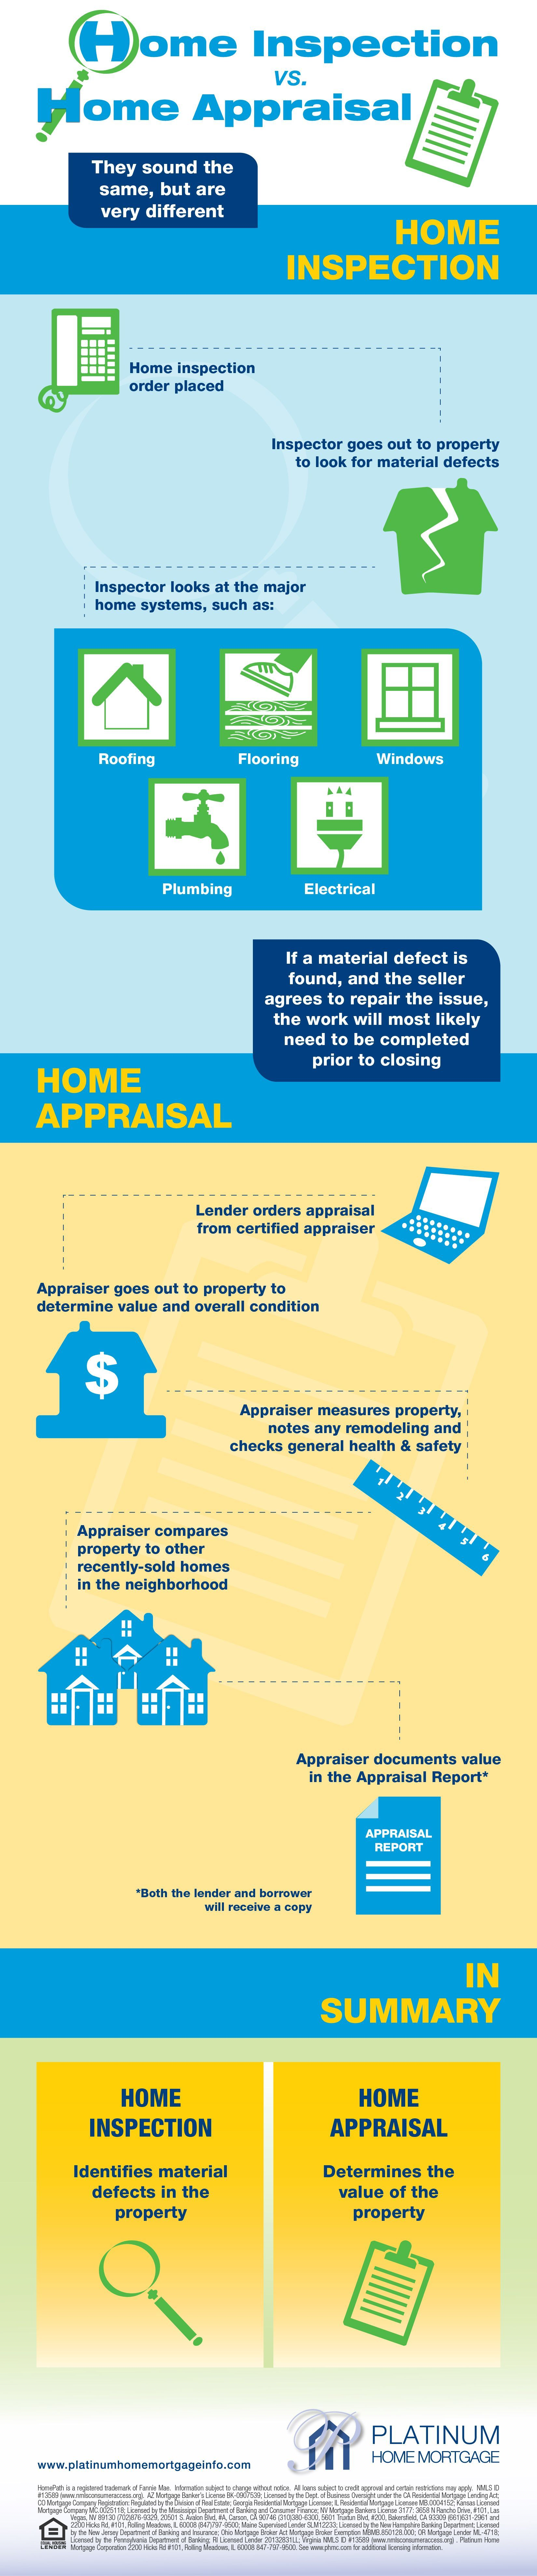 This is a good explanation of the Home Inspection v. Home